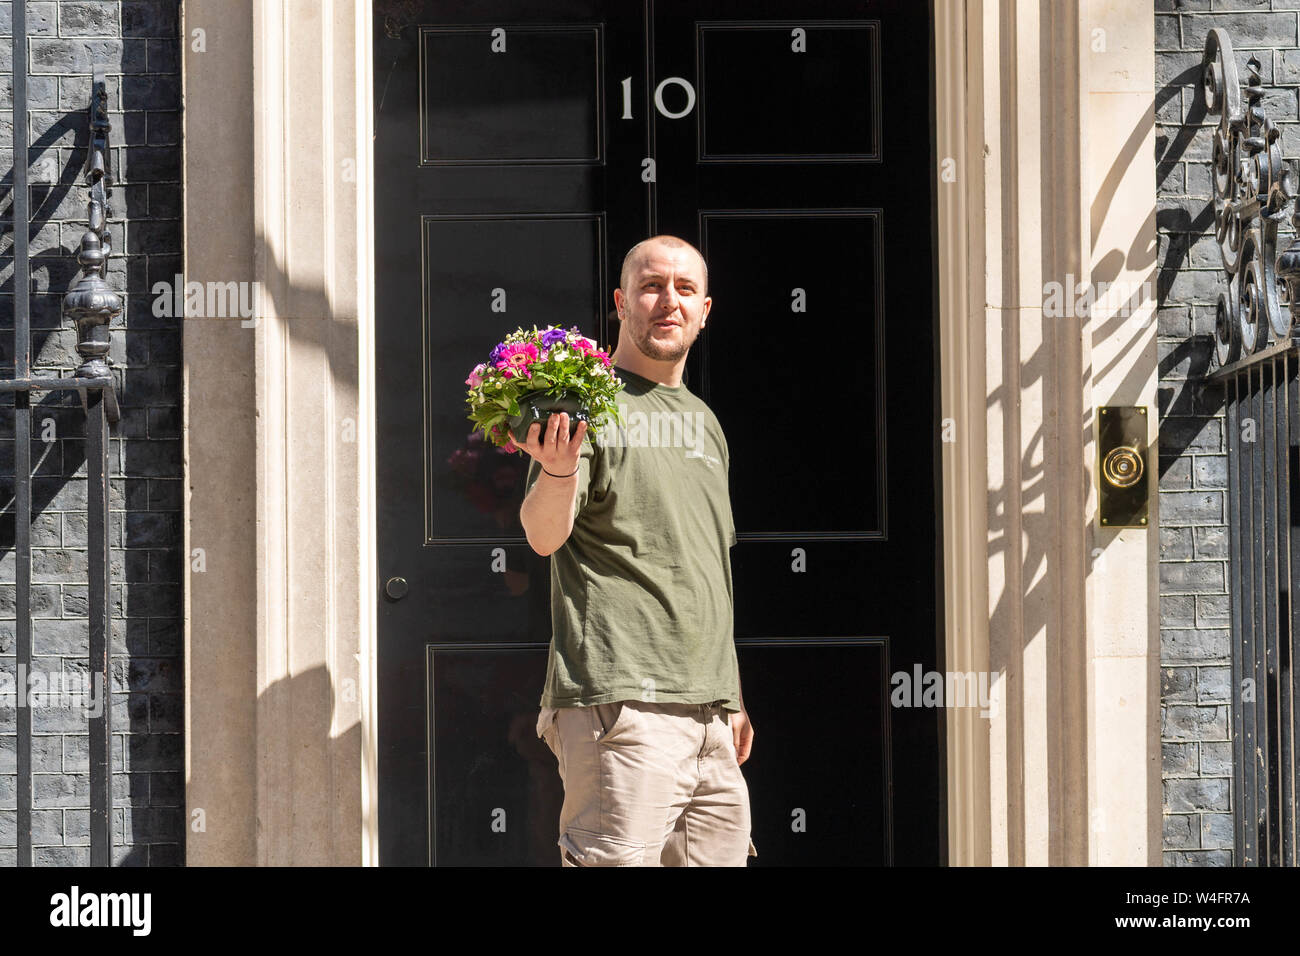 London, UK. 23rd July 2019. Flowers arrive at Theresa's May last cabinet at 10 Downing Street, Credit: Ian Davidson/Alamy Live News Stock Photo